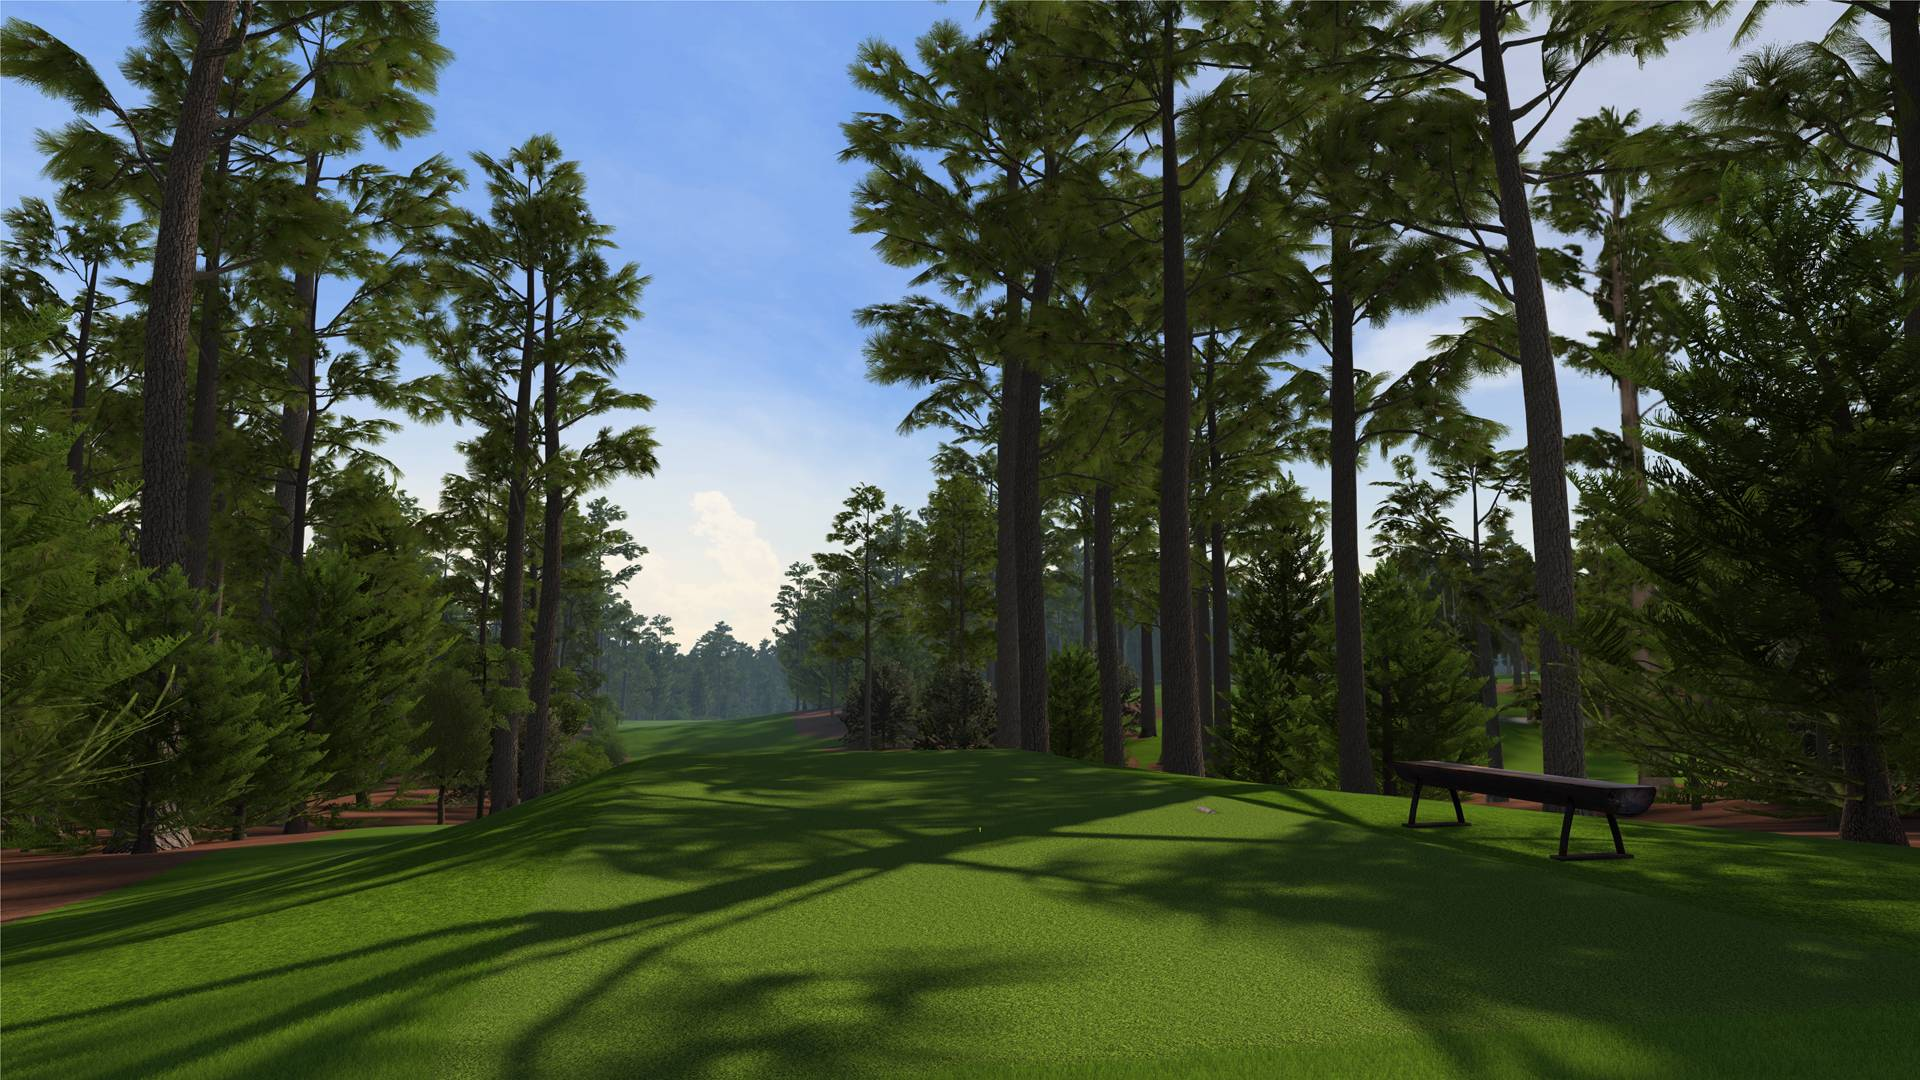 65 Augusta National Golf Wallpapers   Download at WallpaperBro 1920x1080